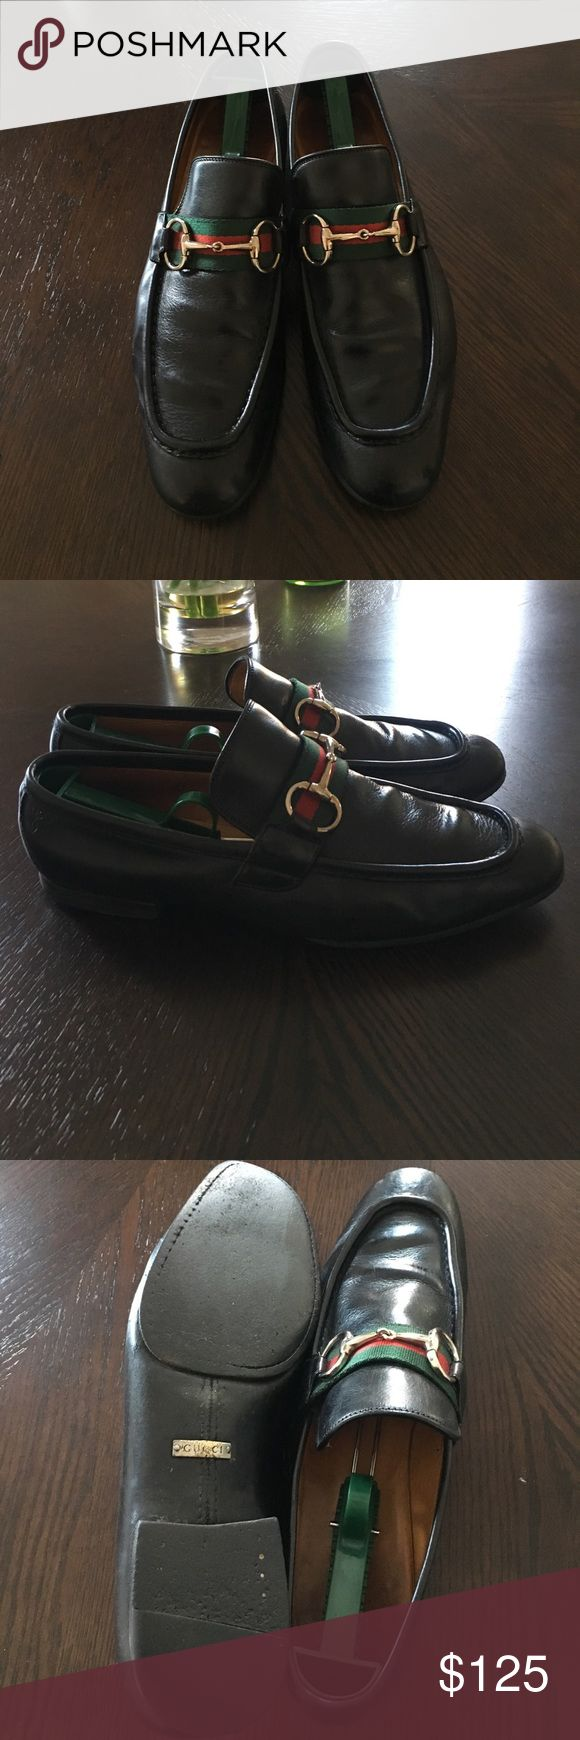 Gucci loafers Vintage Gucci loafers good investment have been worn Gucci size 9 USA 10 Gucci Shoes Loafers & Slip-Ons